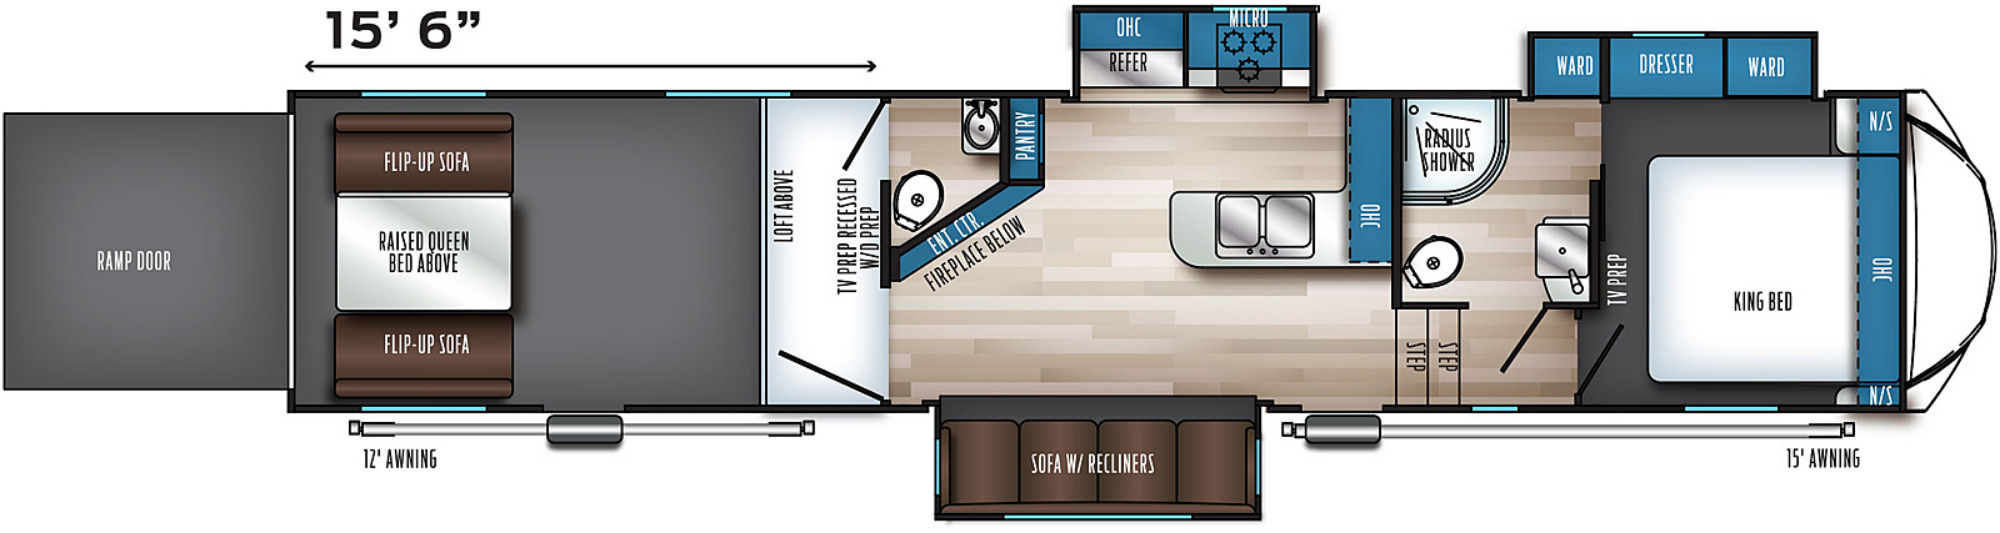 View Floor Plan for 2022 FOREST RIVER ROGUE ARMORED 383G2